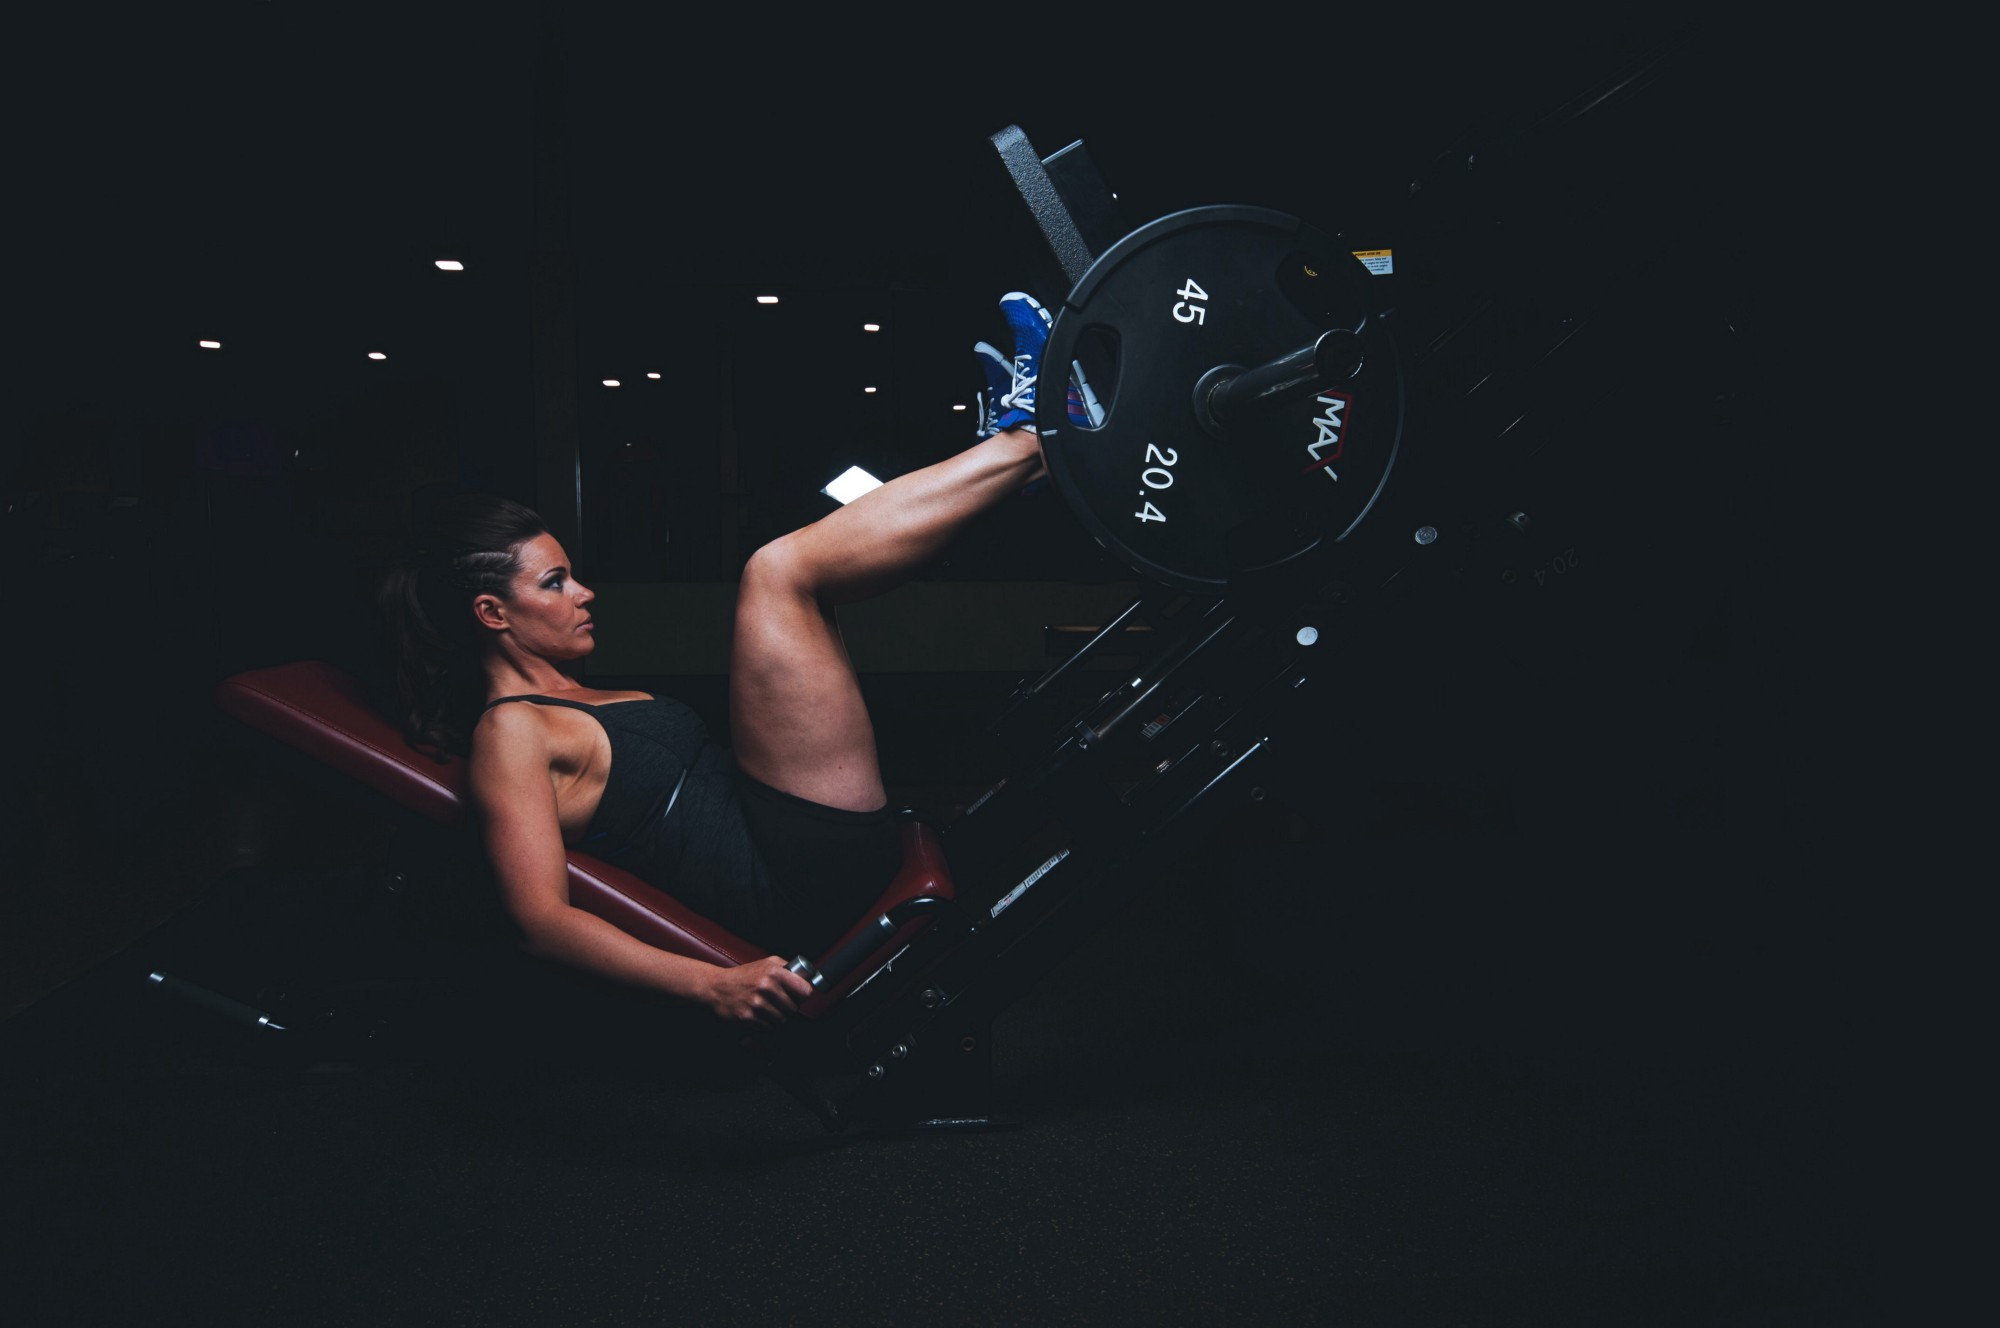 A woman against a dark background uses a leg press machine. She looks strong and focused.